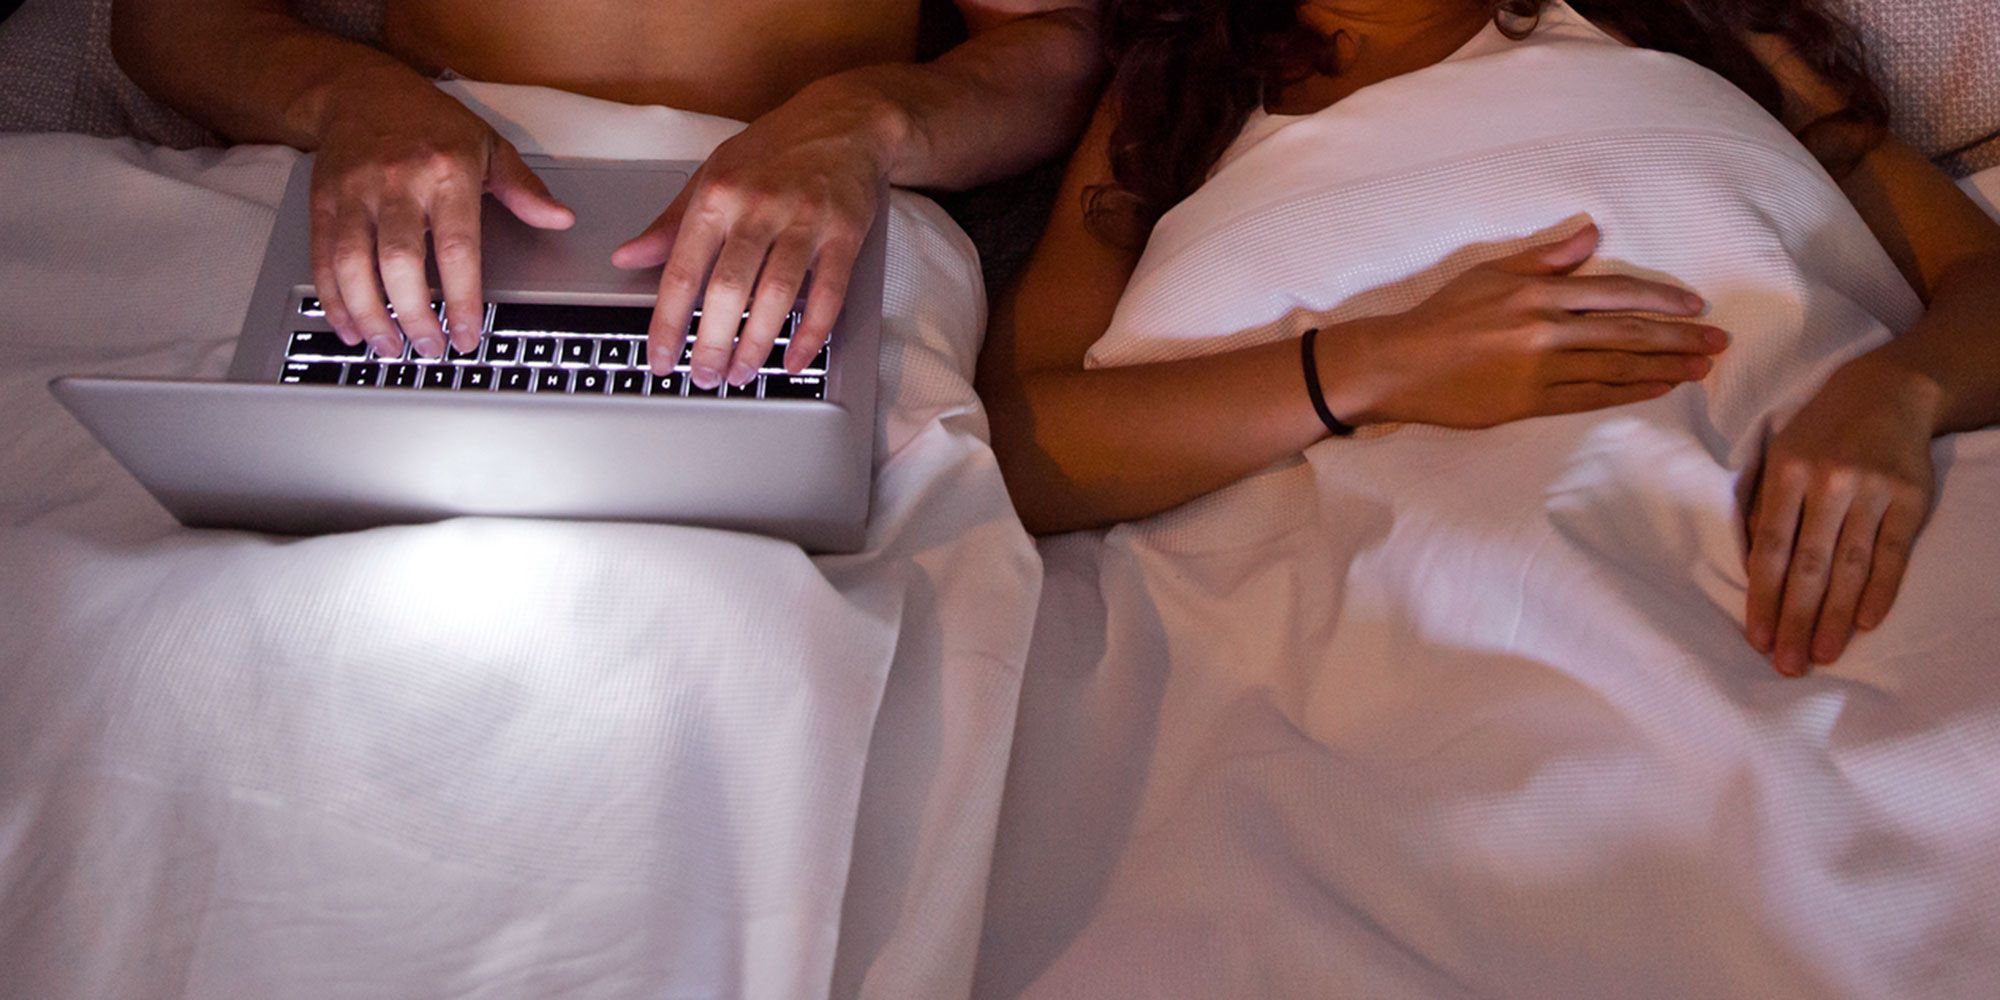 porn together watching porn